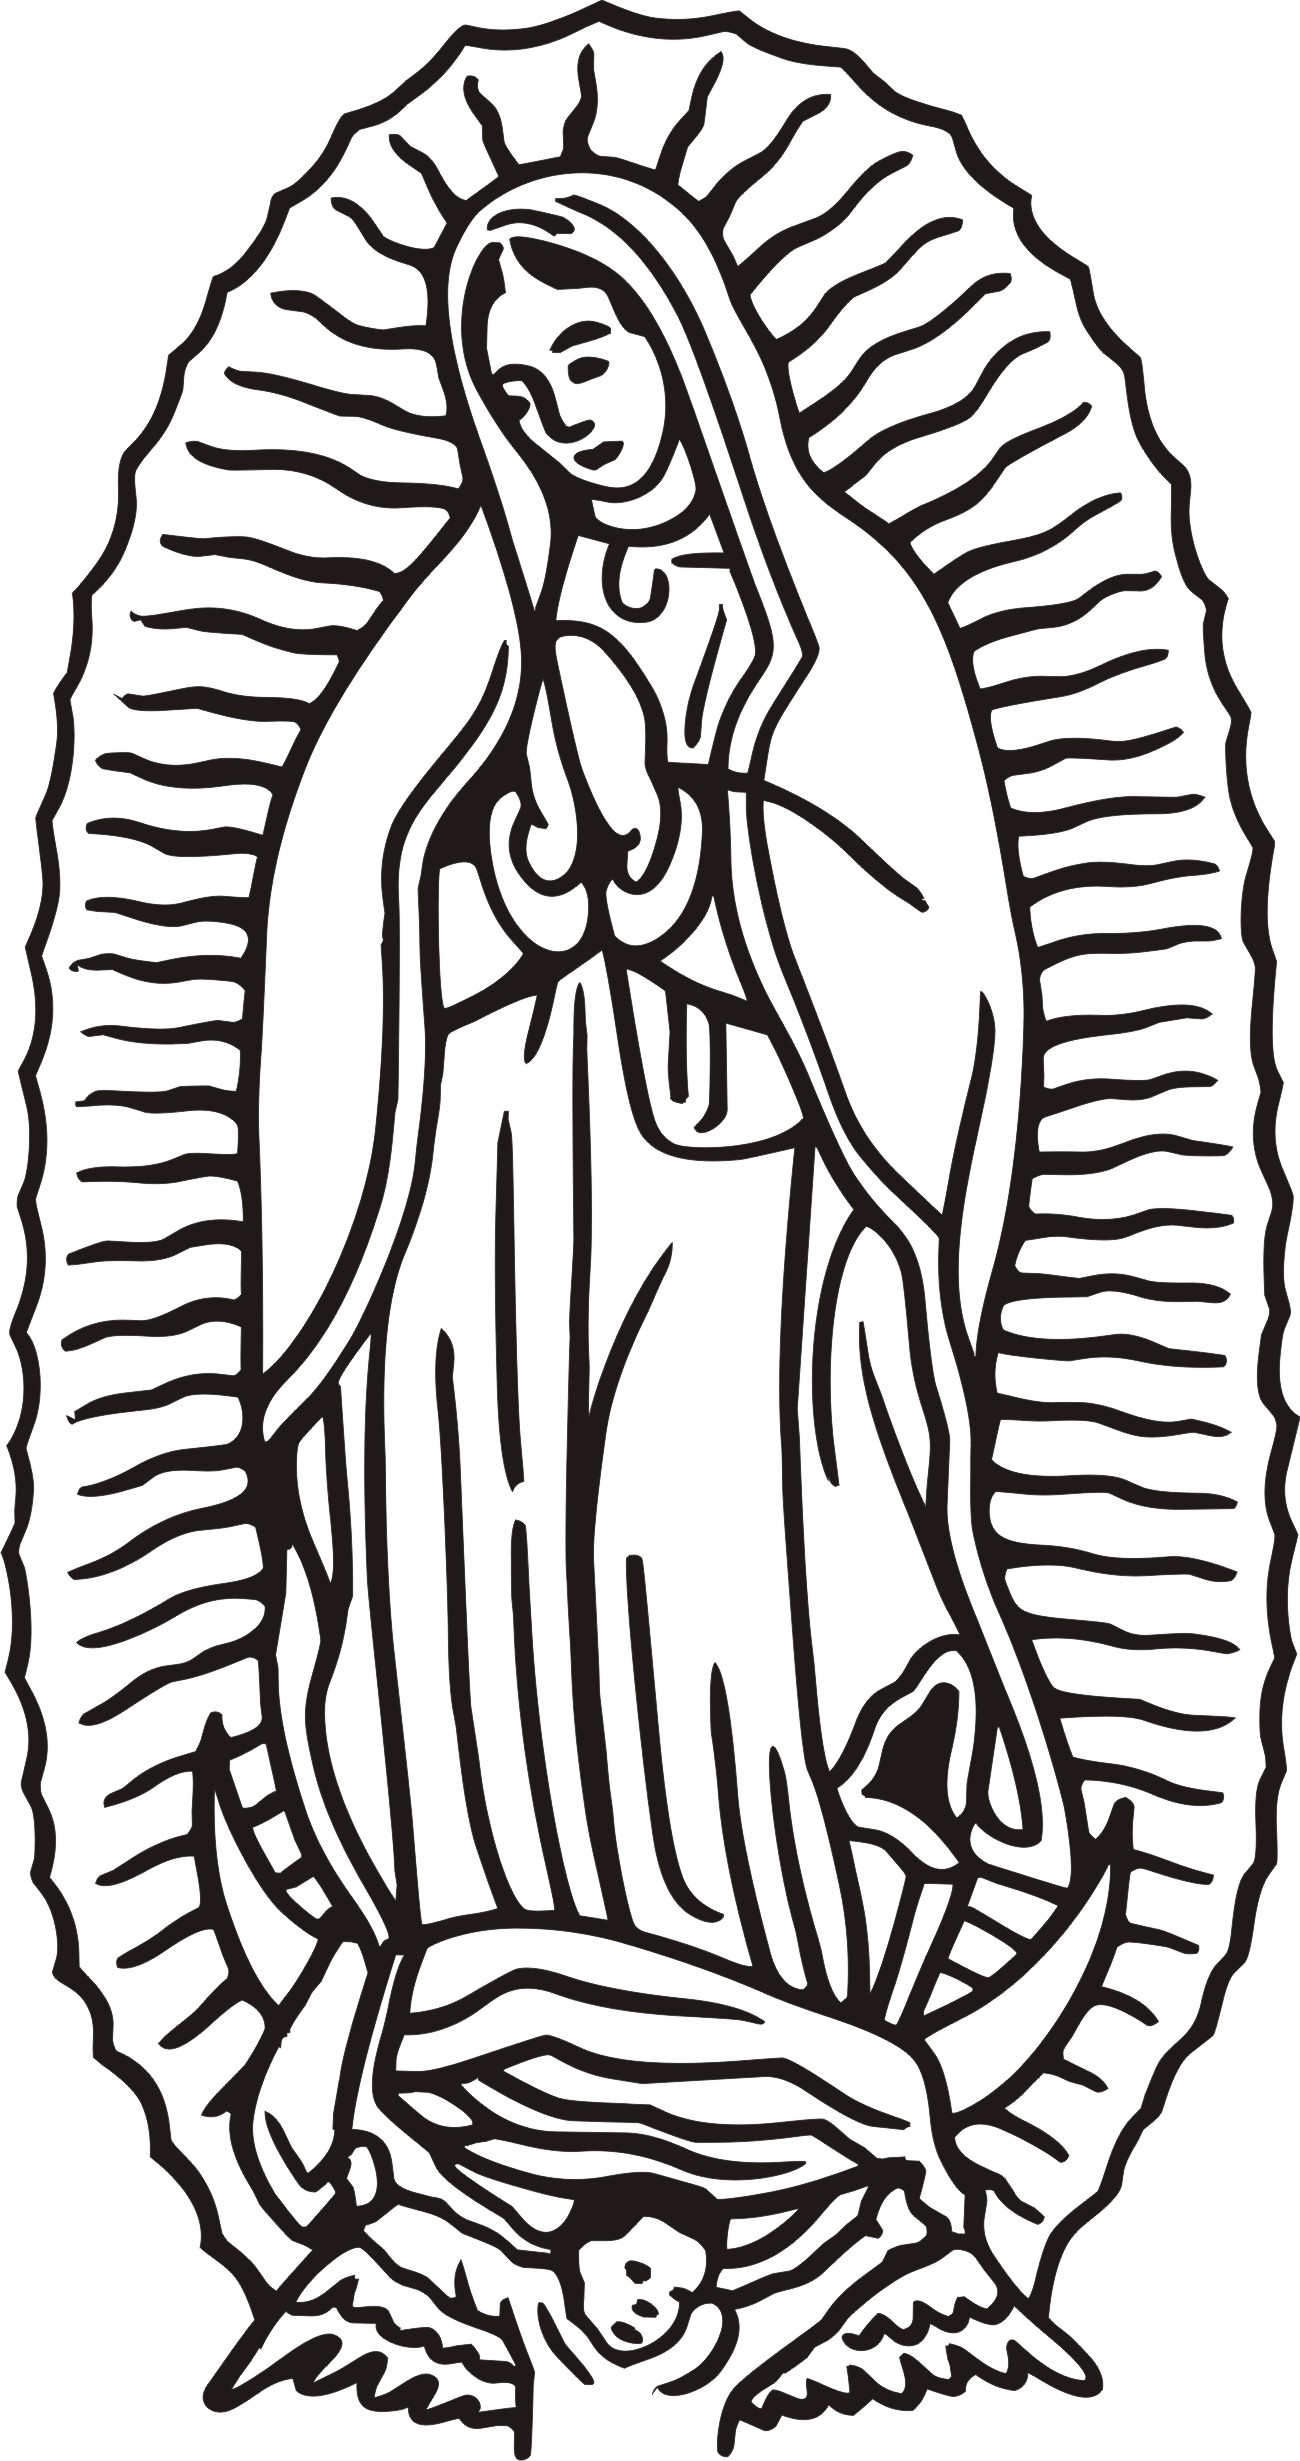 virgen de guadalupe coloring pages virgen de guadalupe coloring pages coloring home